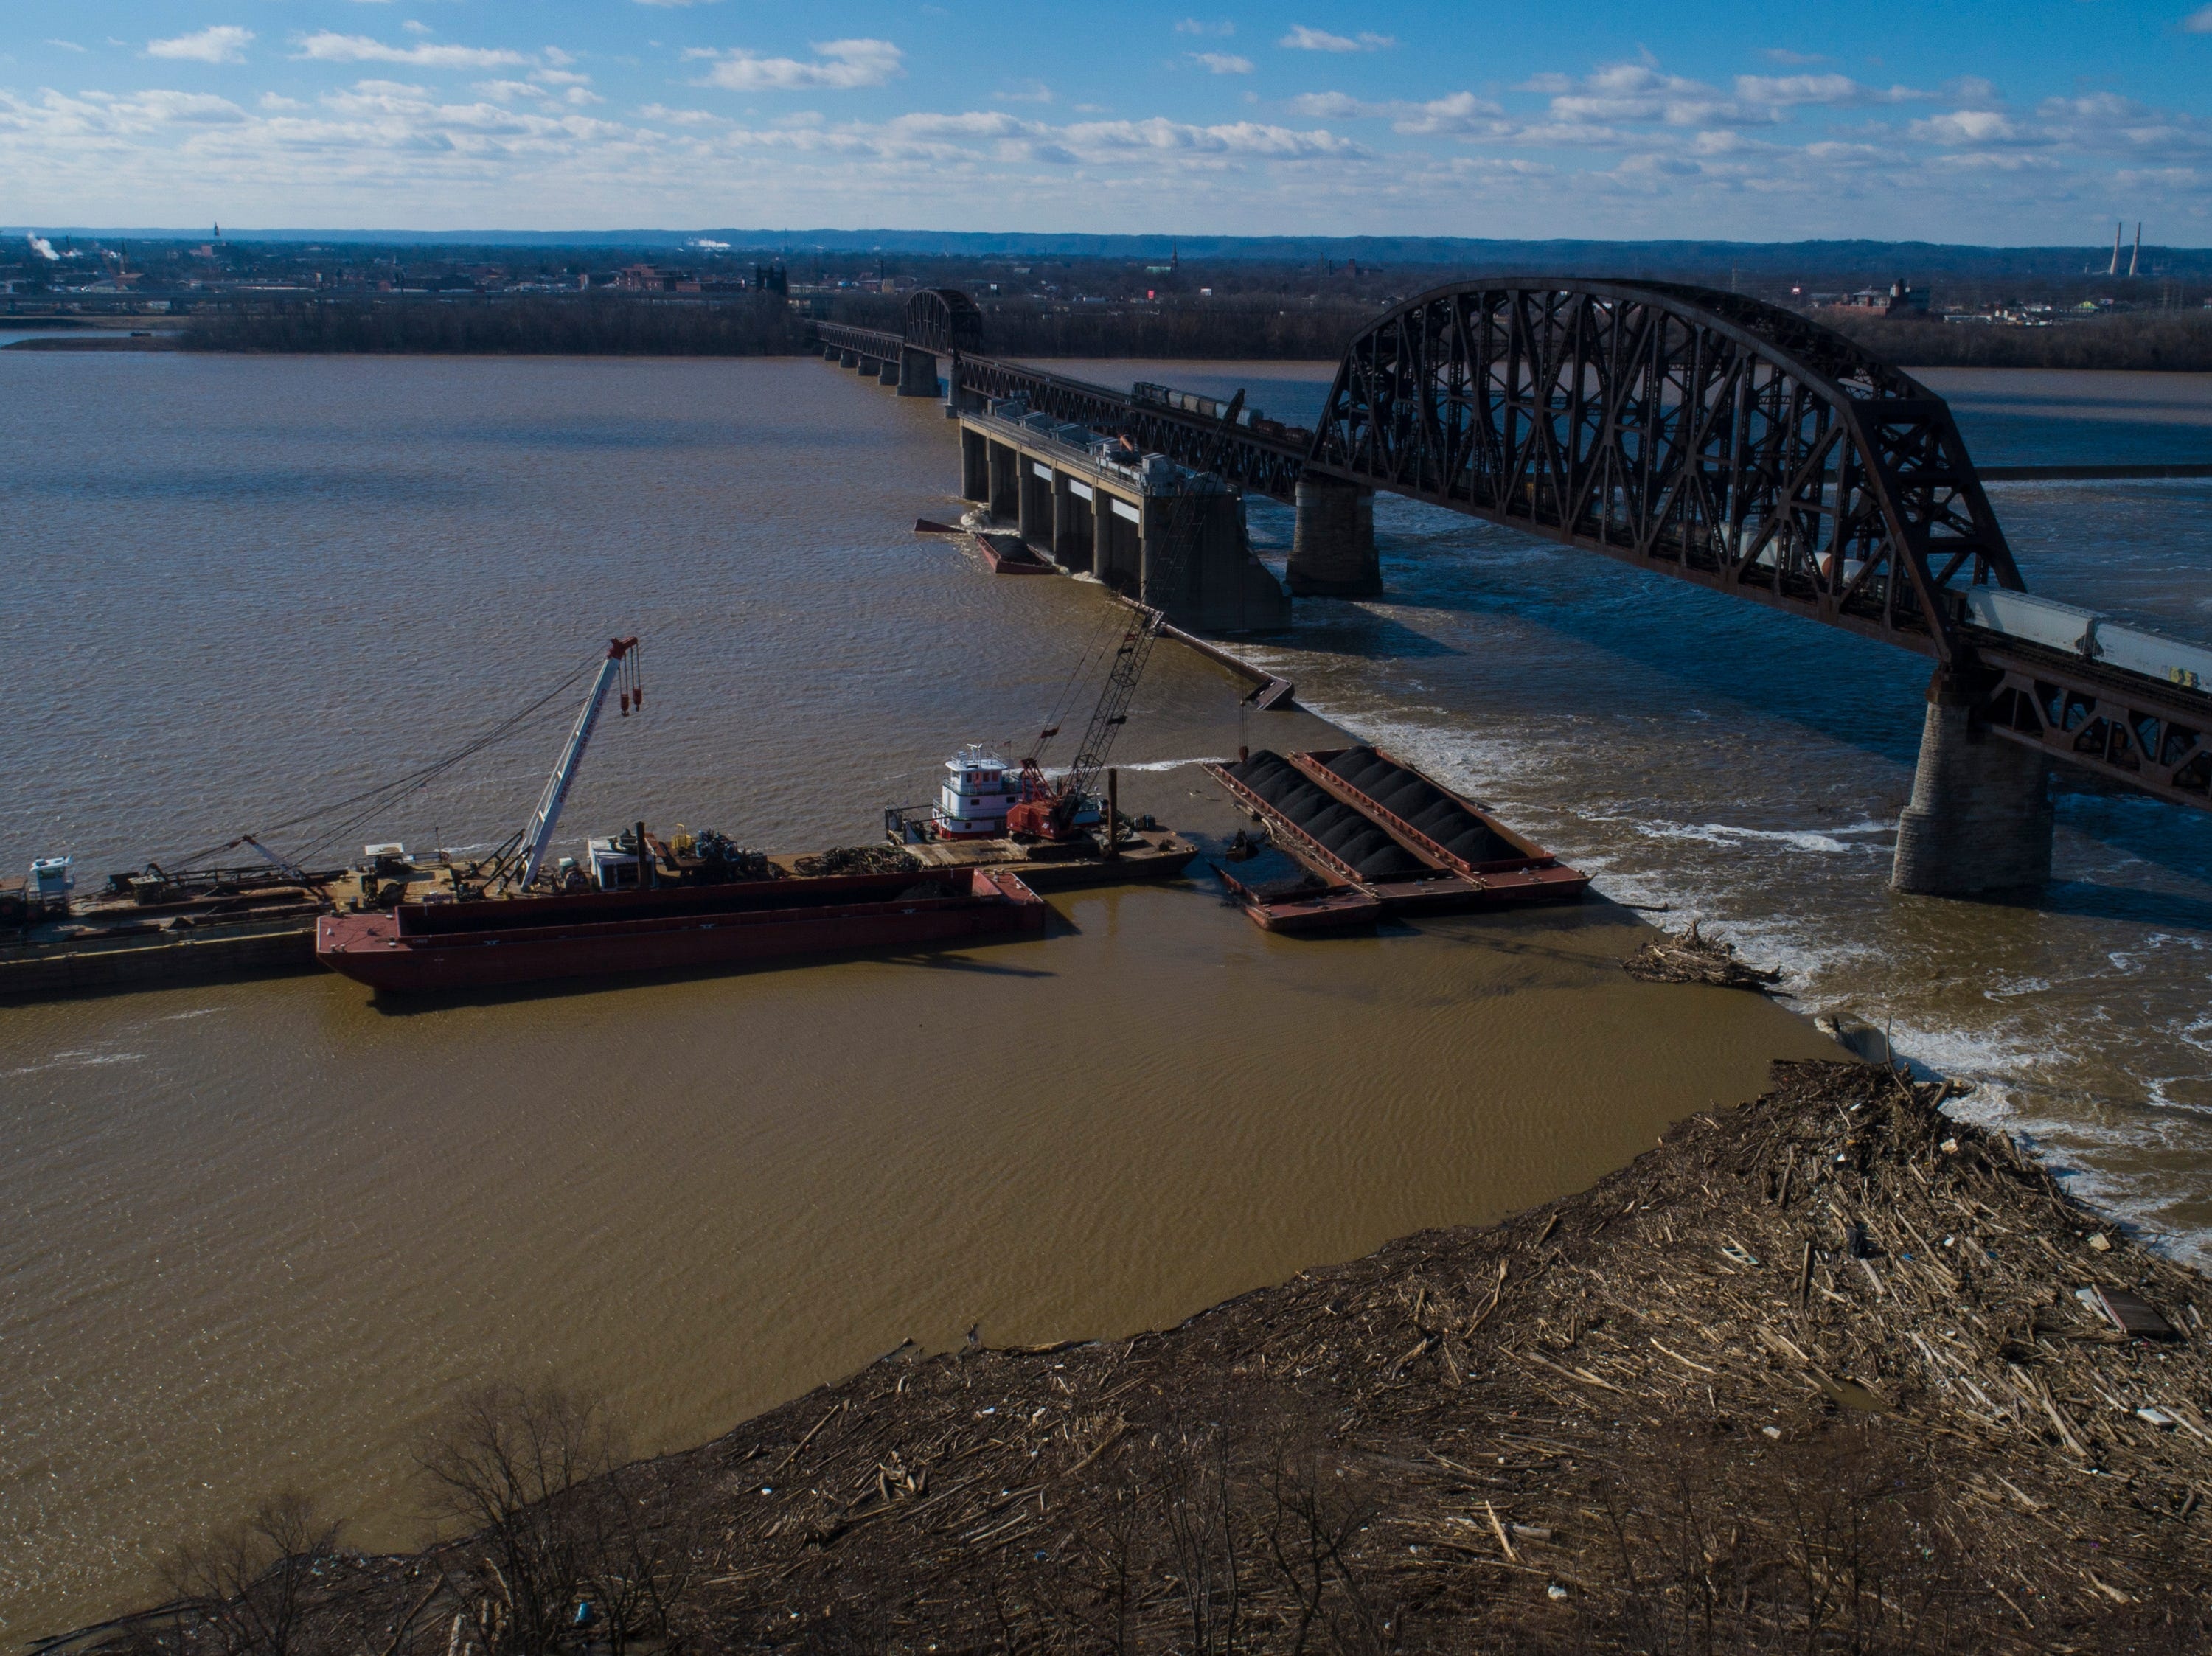 A crane lifts coal still remaining on the barges that are still afloat at the dam along the Ohio River on Wednesday morning. Once the coal is recovered from each barge, the barge will subsequently be recovered. The process is expected to take weeks. Jan. 9, 2019